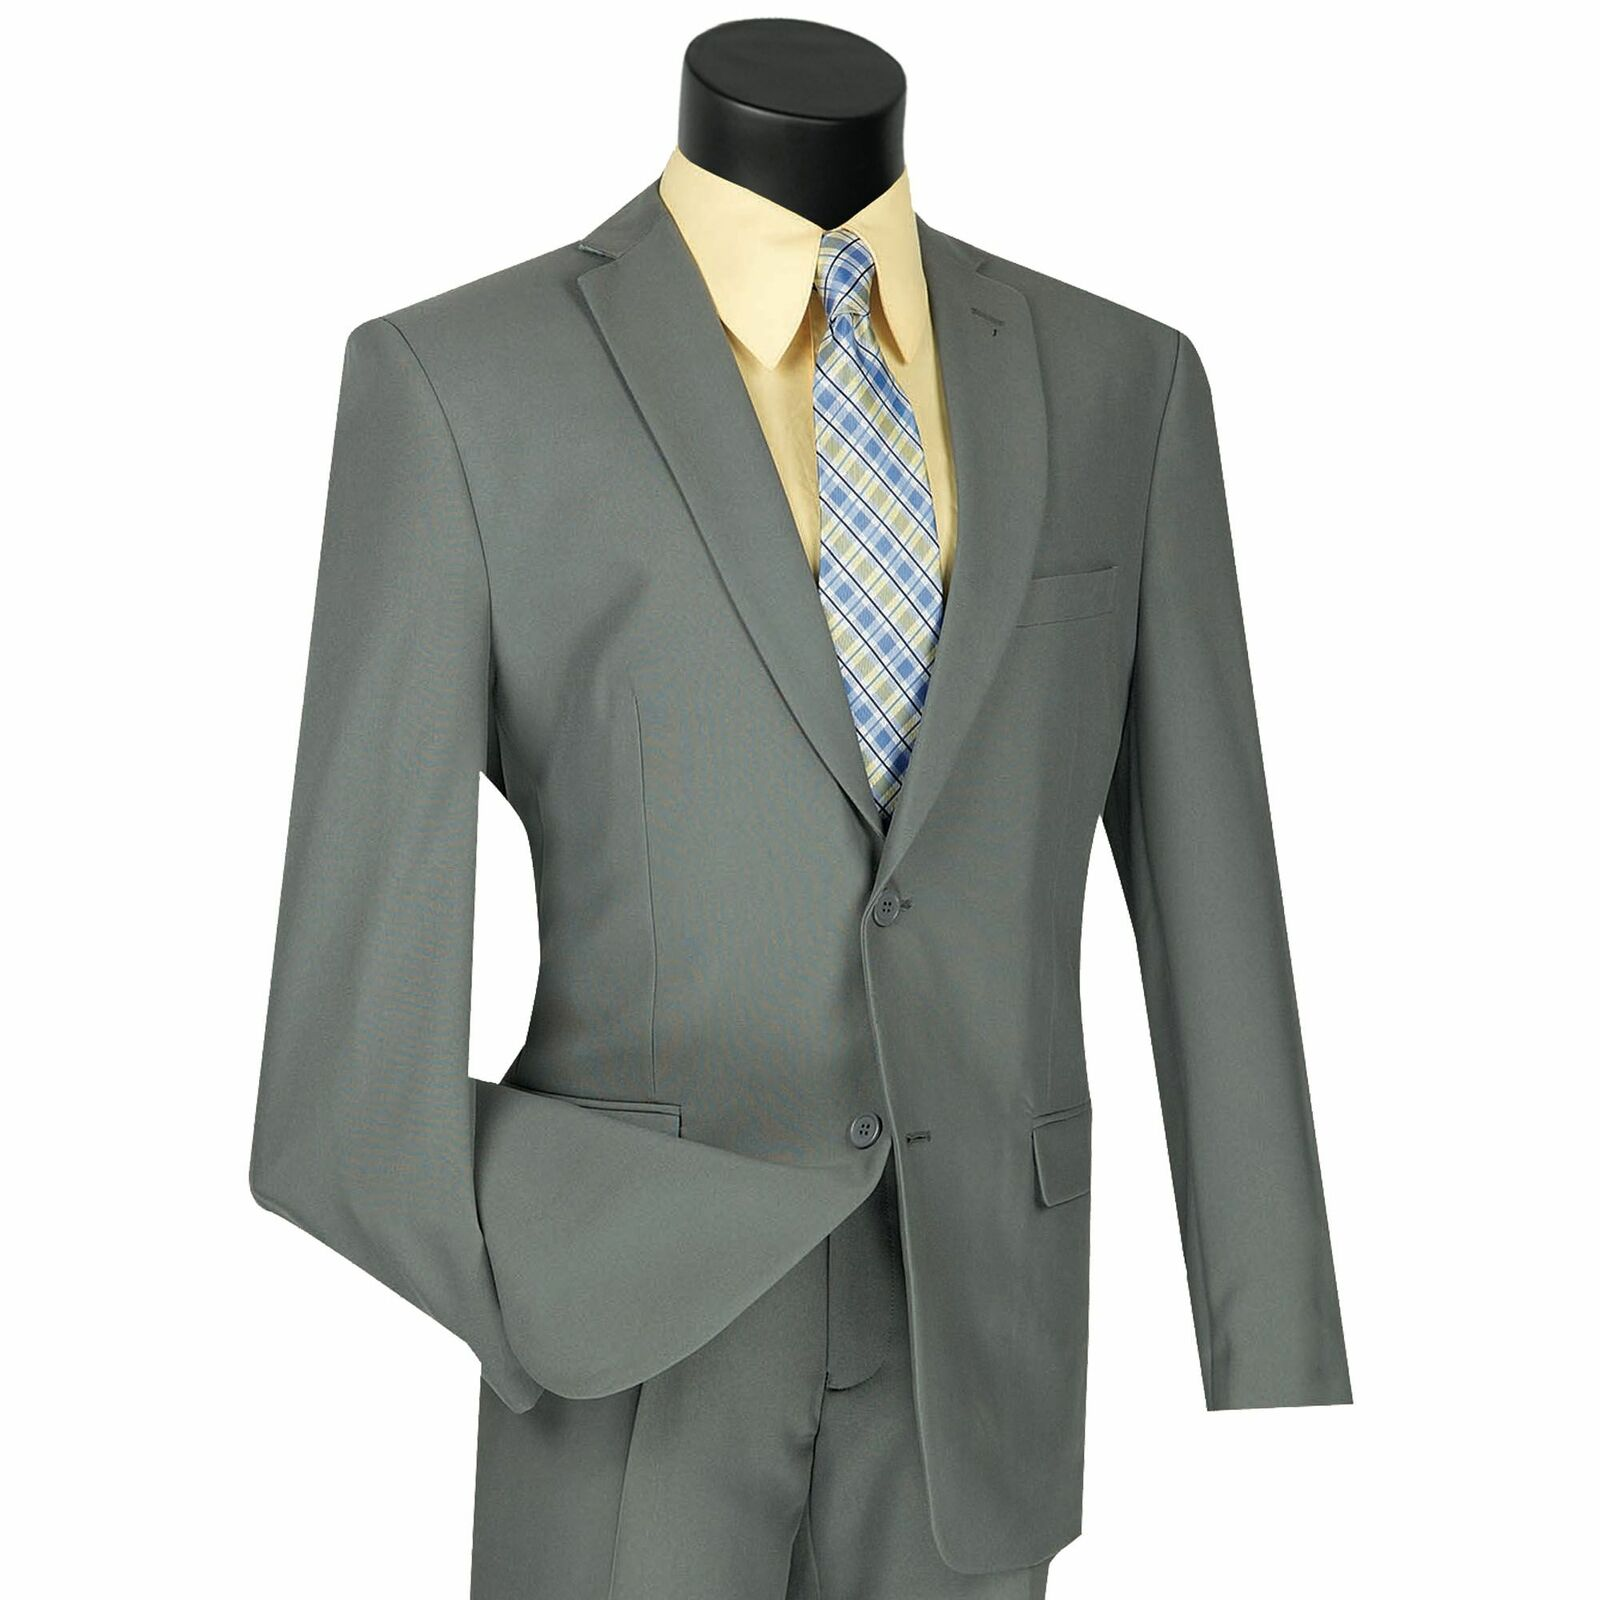 Lucci Men's Light Gray 2 Button Classic Fit Poplin Polyester Suit